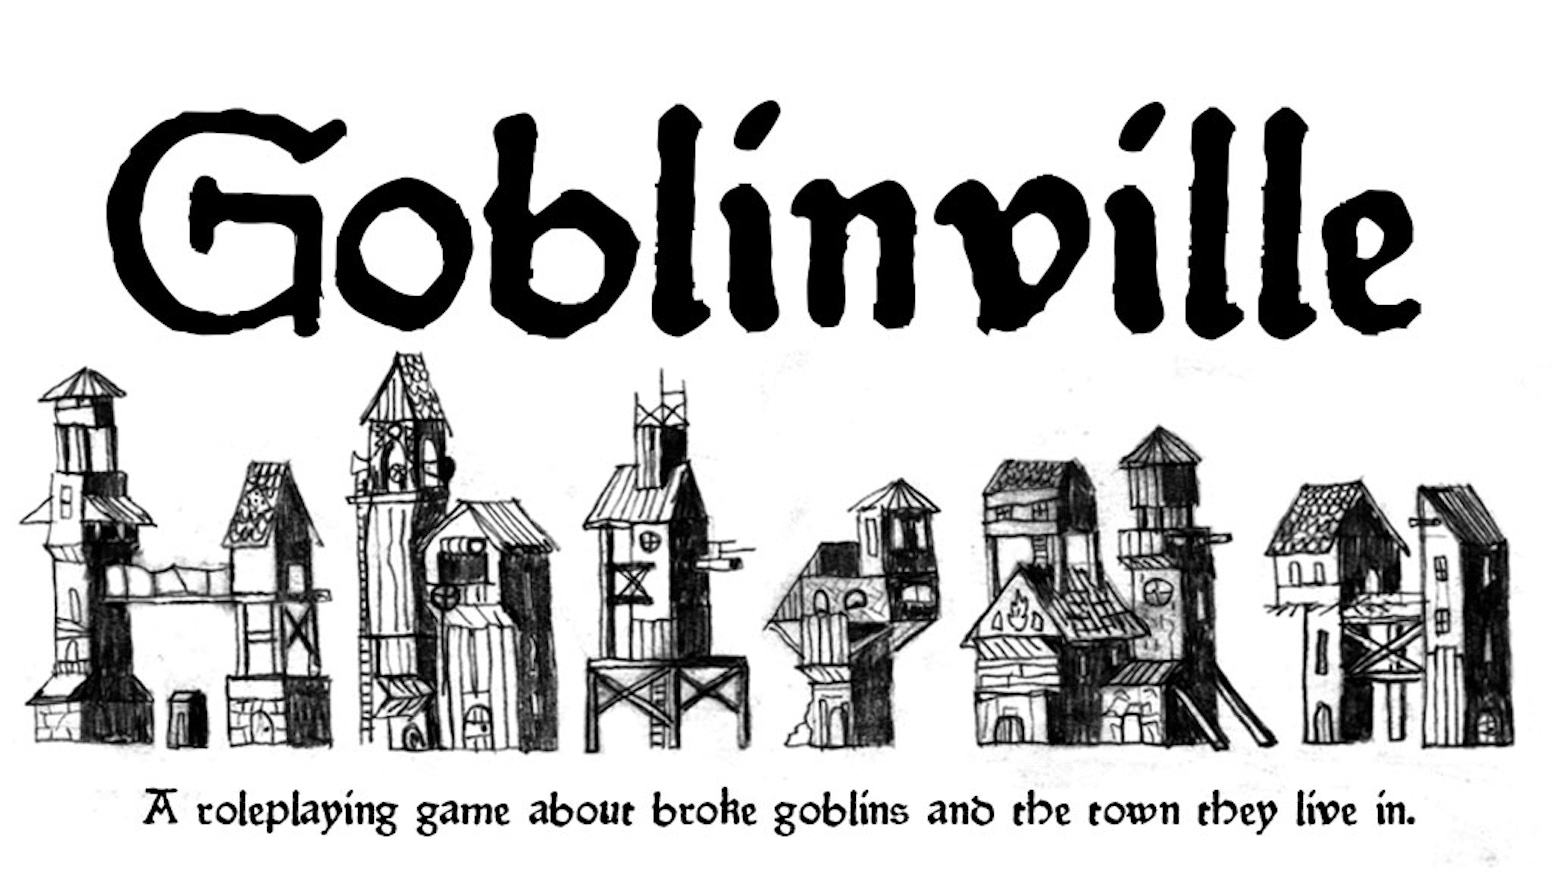 A roleplaying game about broke goblins and the town they live in.